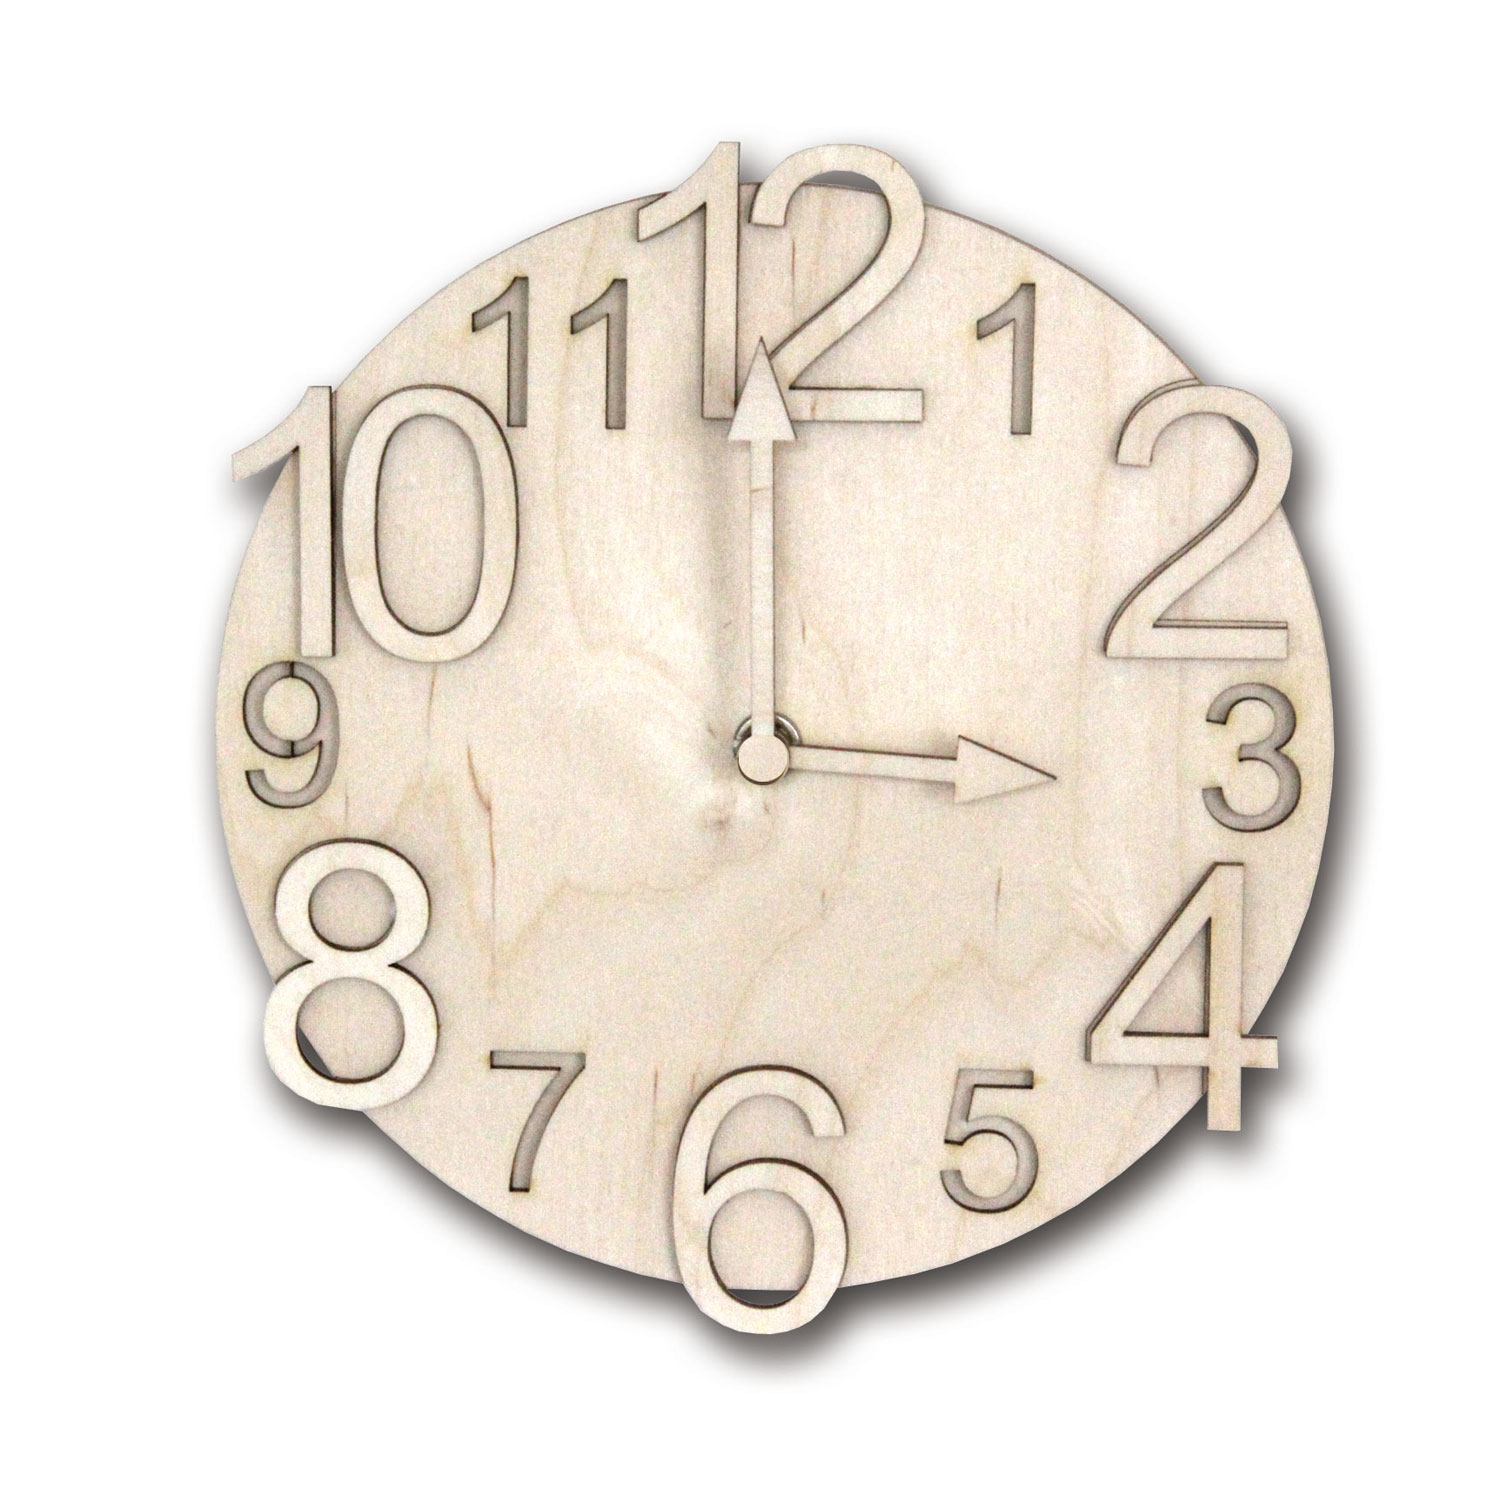 Kit to make your own Wooden Wall Clock